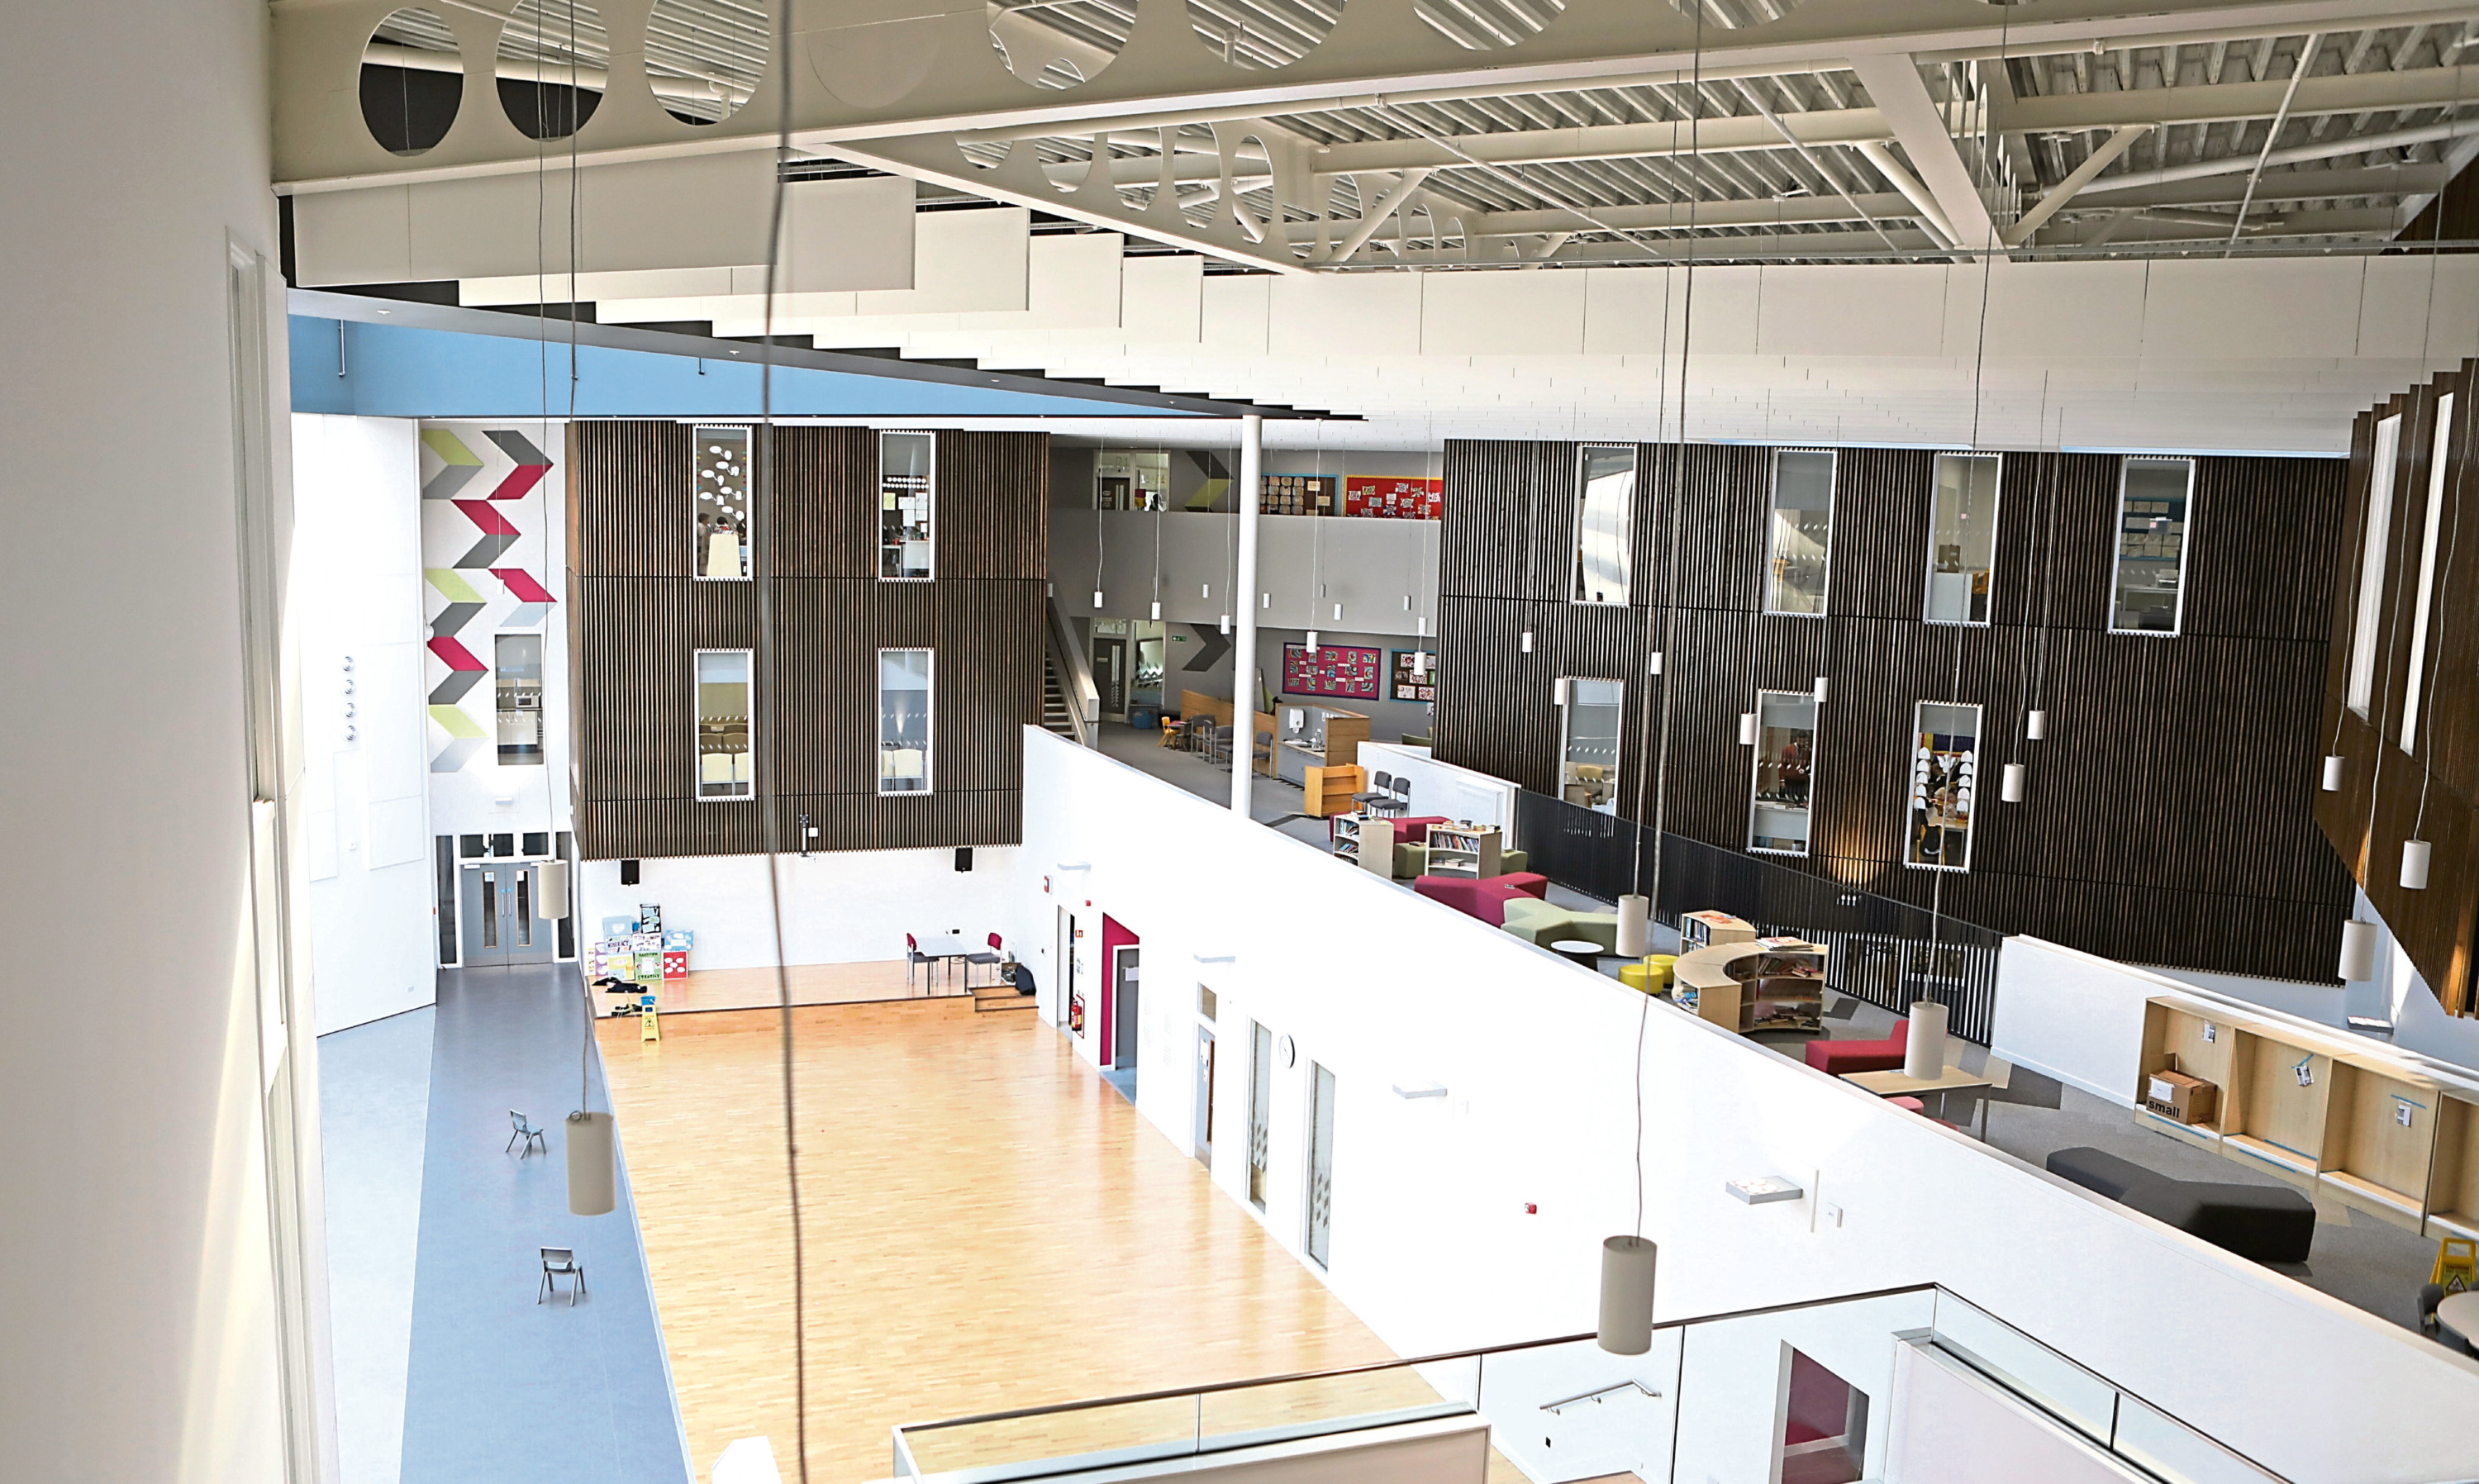 The North East campus in the Whitfield area of Dundee opened to pupils last year.